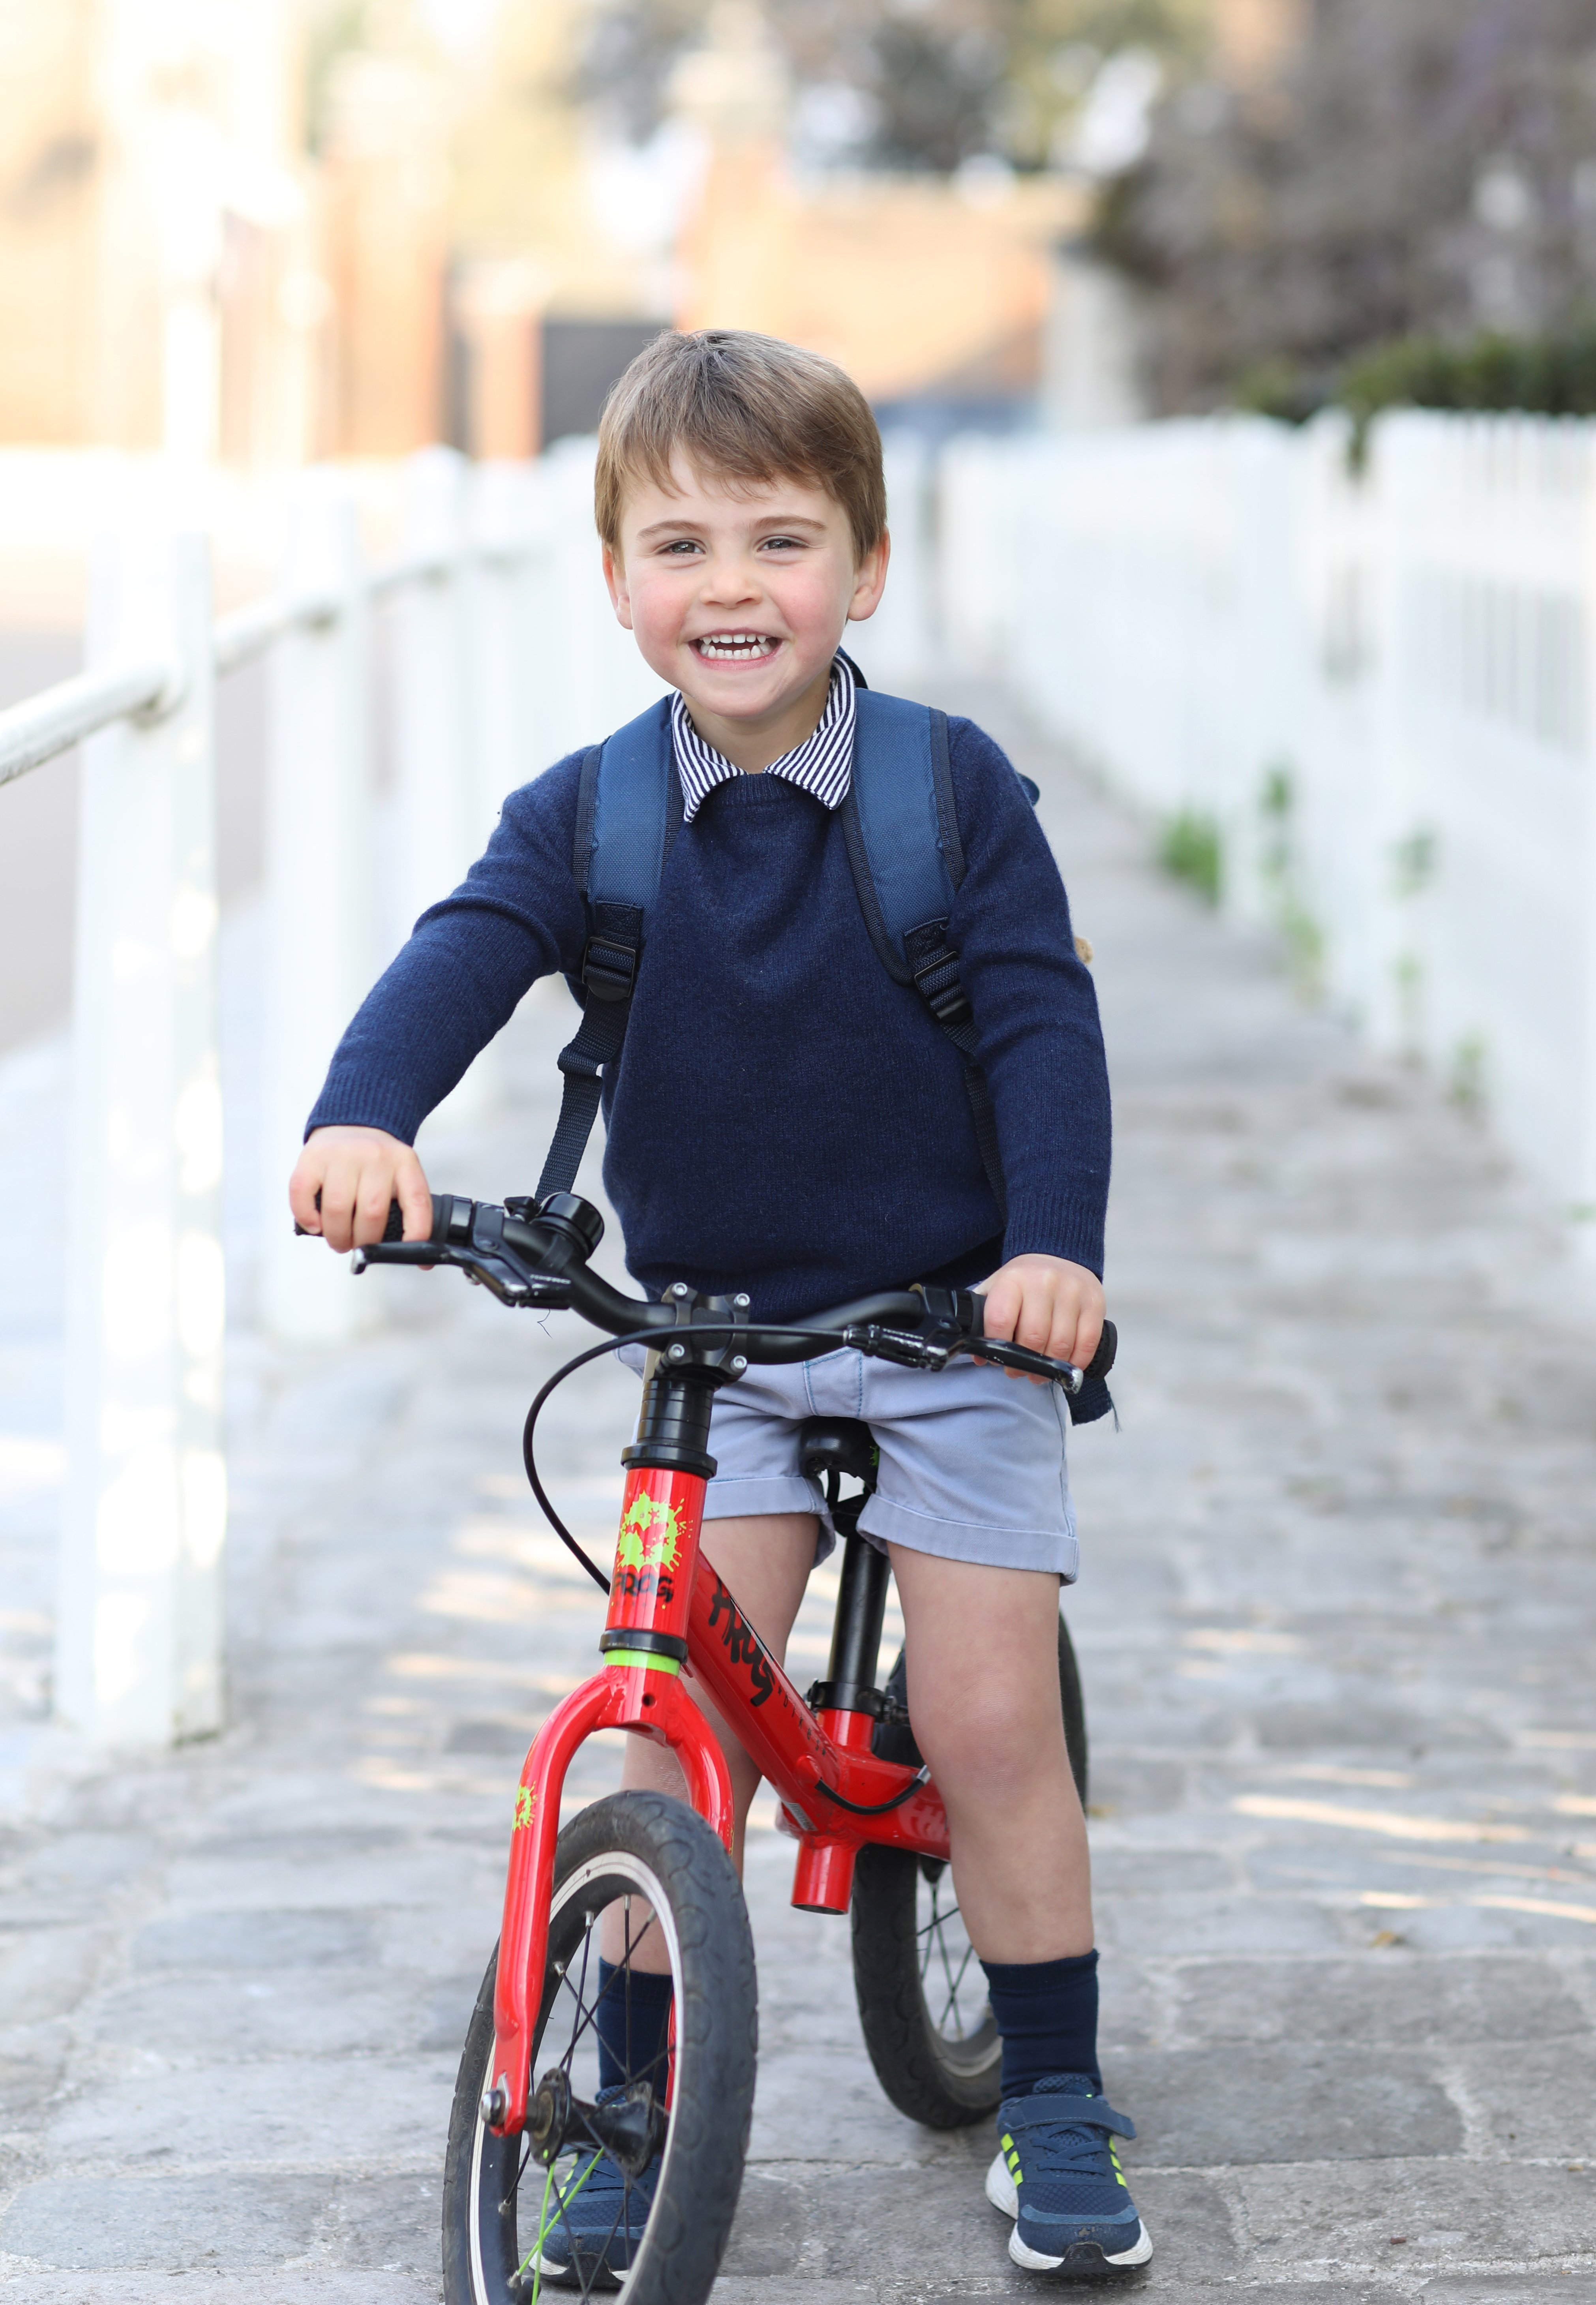 Prince Louis on his Frog bike, taken on Wednesday by his mother, the Duchess of Cambridge, at Kensington Palace